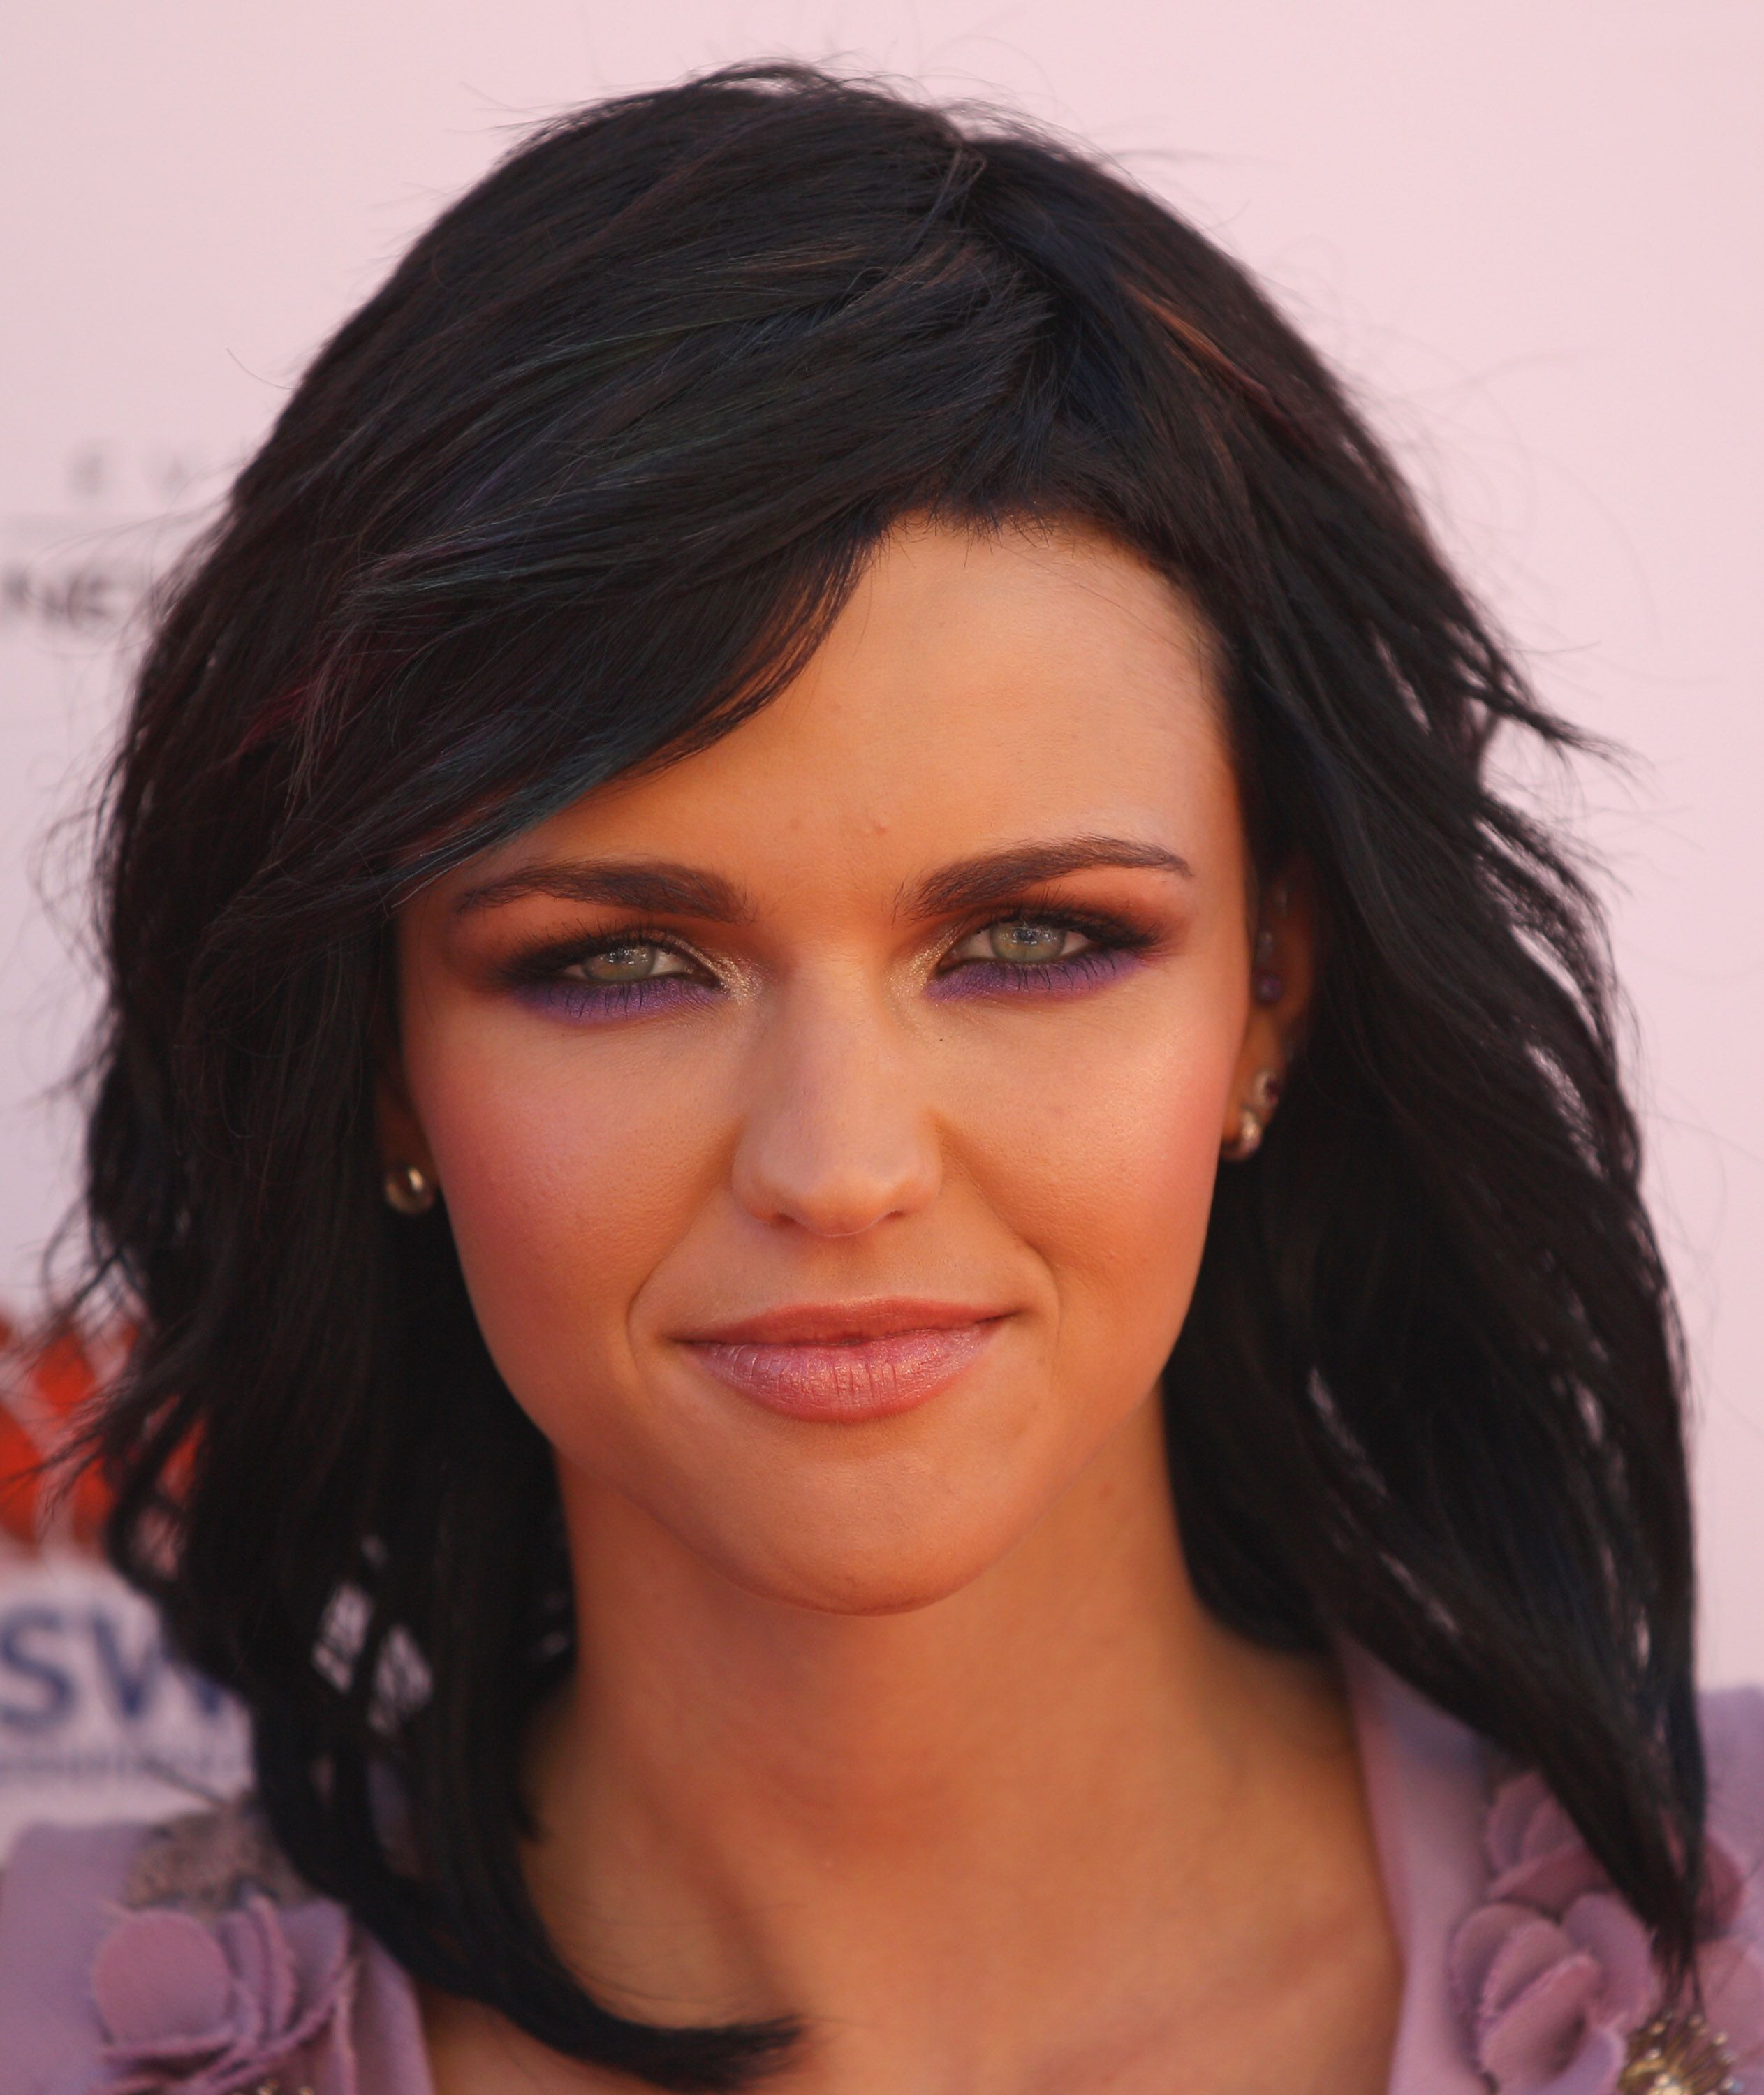 ruby rose long and short hair, beauty and makeup looks, tattoos